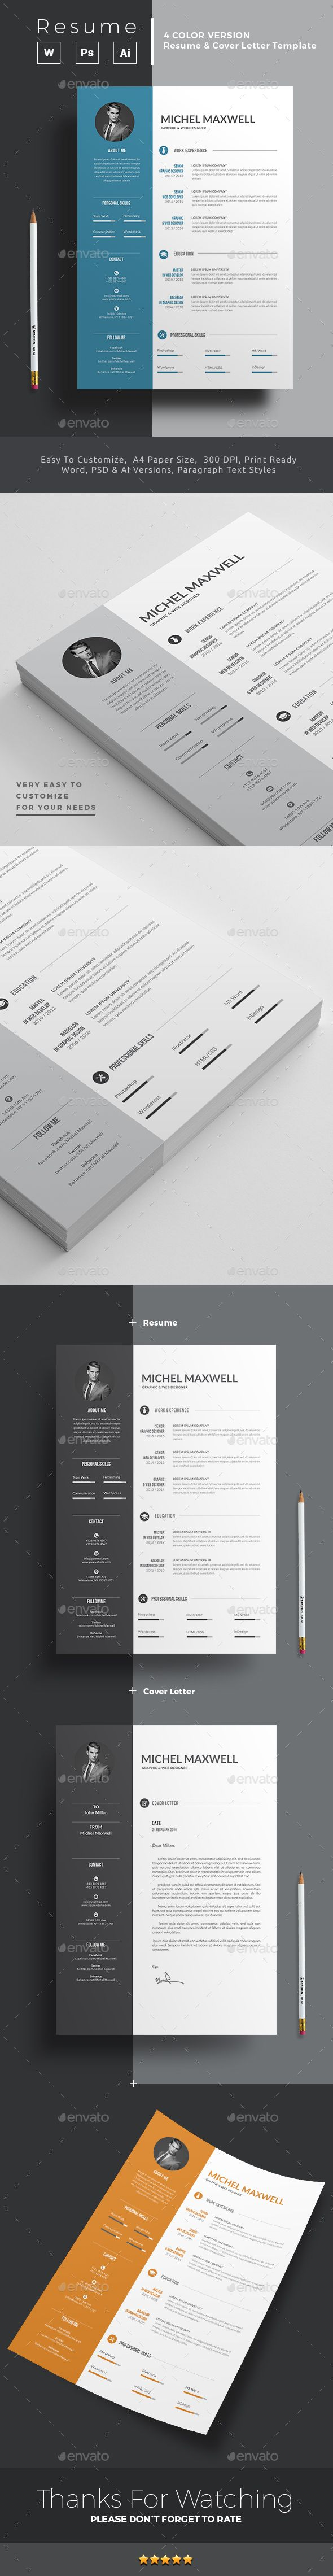 What Is The Best Resume Builder Pdf The  Best Resume Format In Word Ideas On Pinterest  Cv Format  What Does Cv Mean In Resume Word with Web Designer Resume Excel Resume Resumes With Pictures